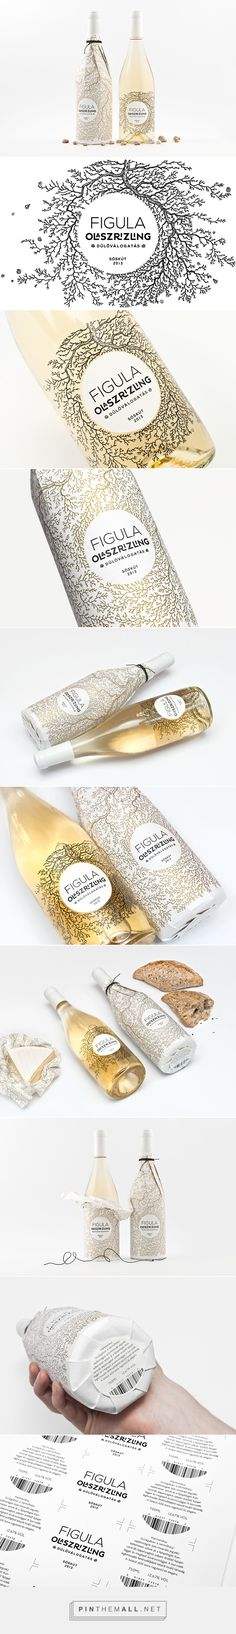 Graphic design, illustration and packaging for Figula Olaszrizling 2013 Wine Label Design on Behance curated by Packaging Diva PD.  Focus mainly on the 35-year-old roots, which enmeshes the bottle defining a circle that marks the location of the typography. Beautiful.